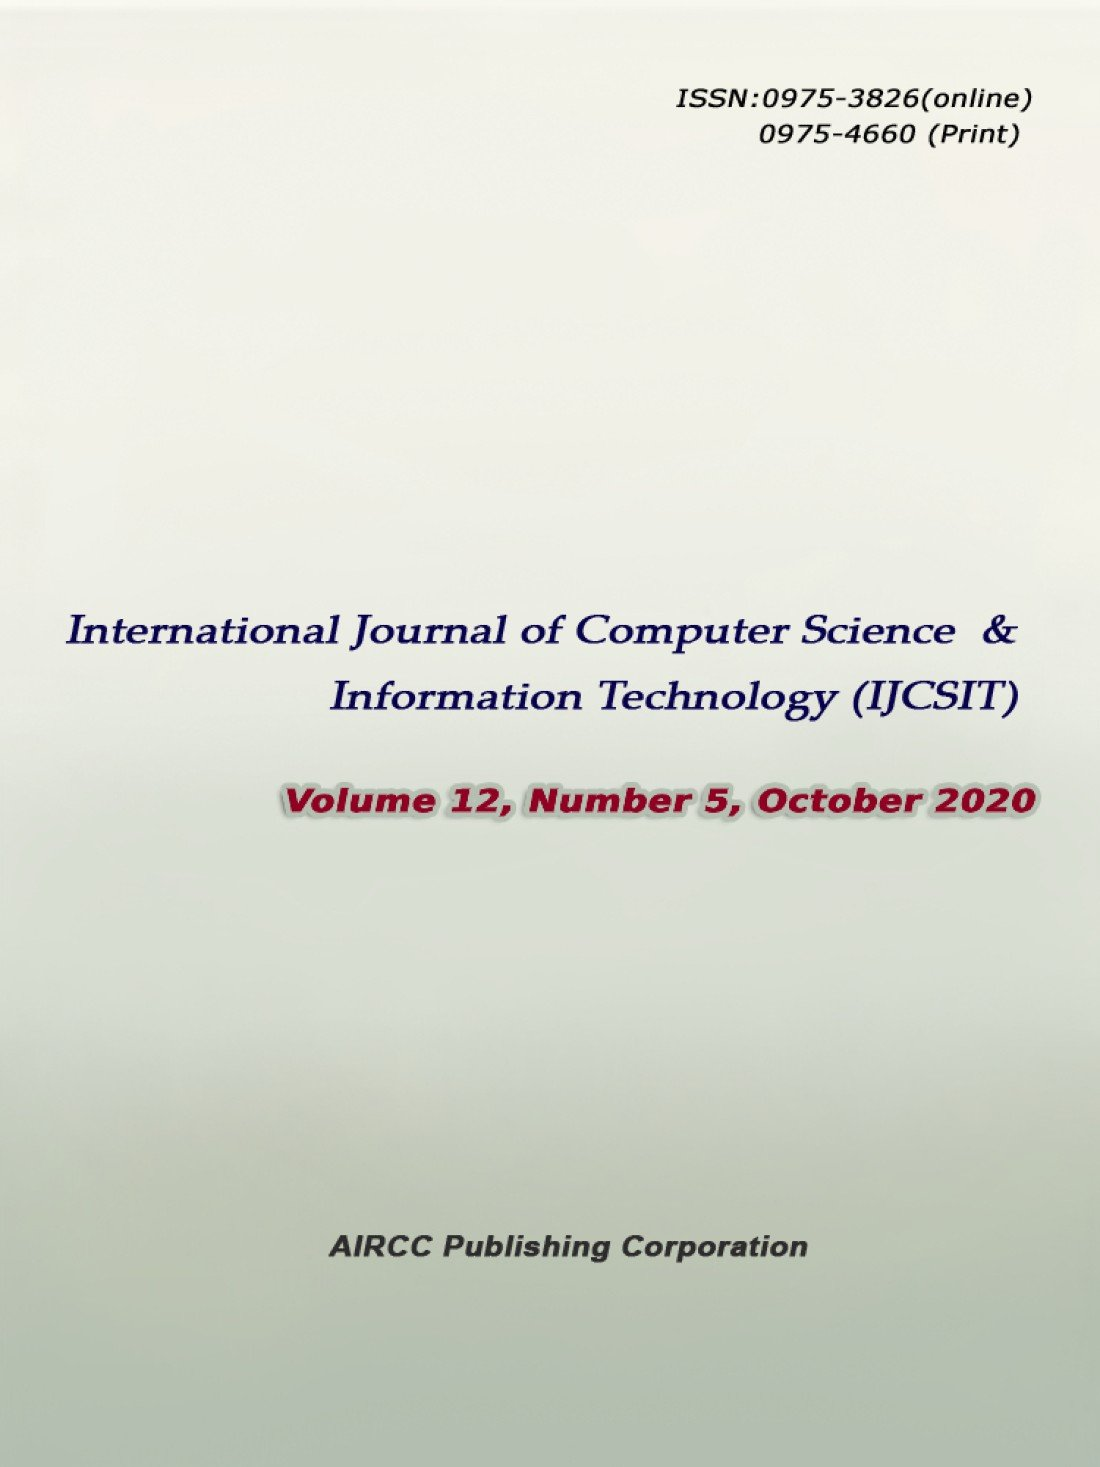 International Journal of Computer Science and Information Technology (IJCSIT), 24 February | Online Event